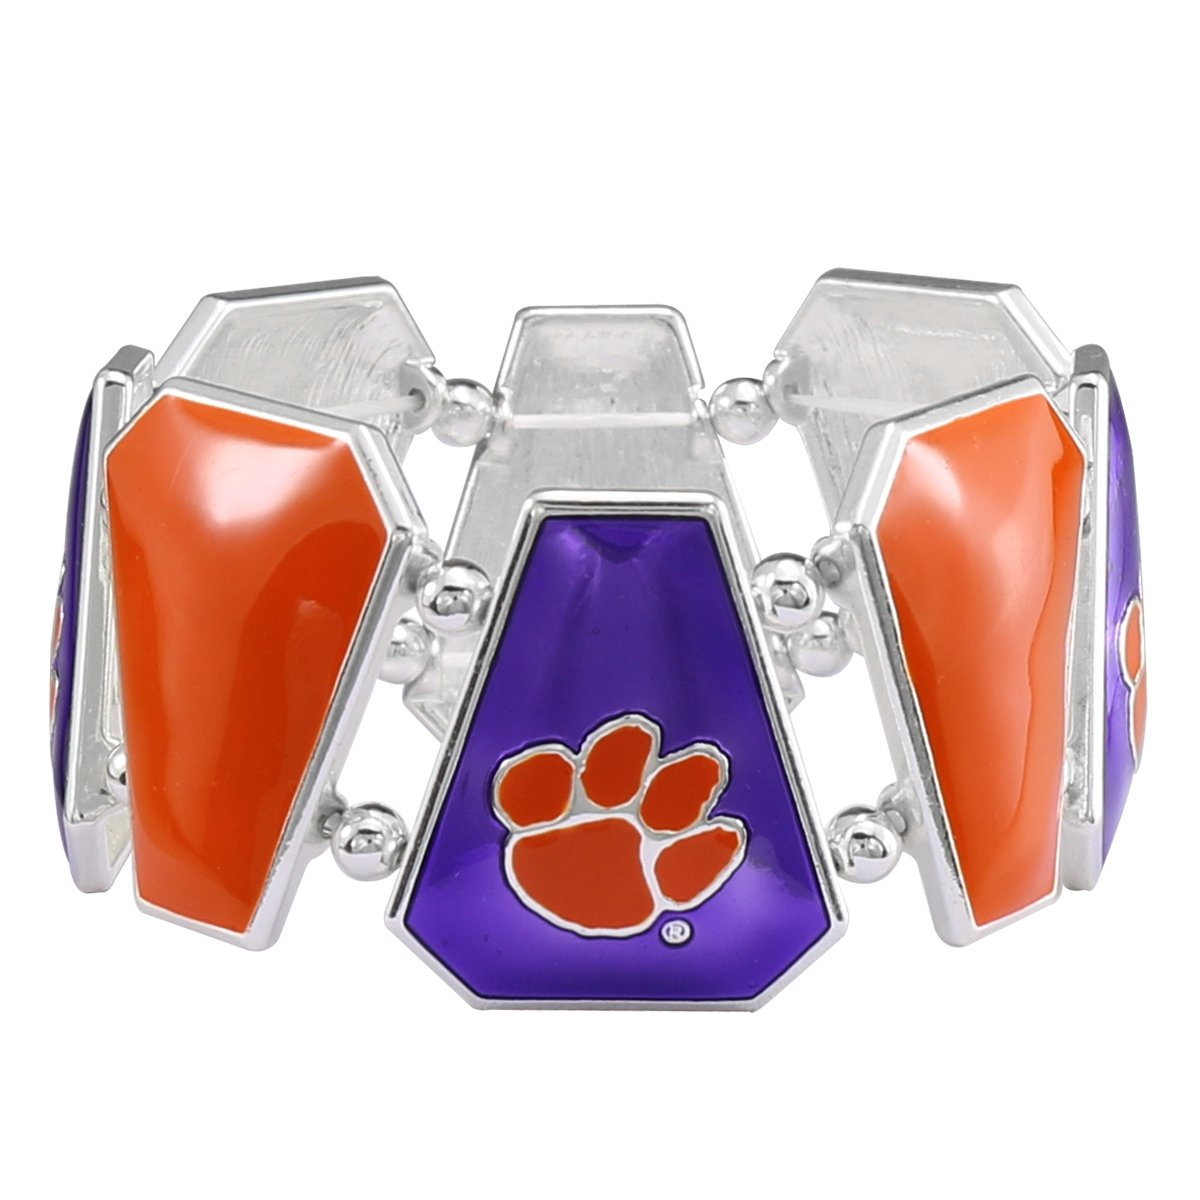 Bonita Bracelet - Orange/purple With Paws - Mr. Knickerbocker